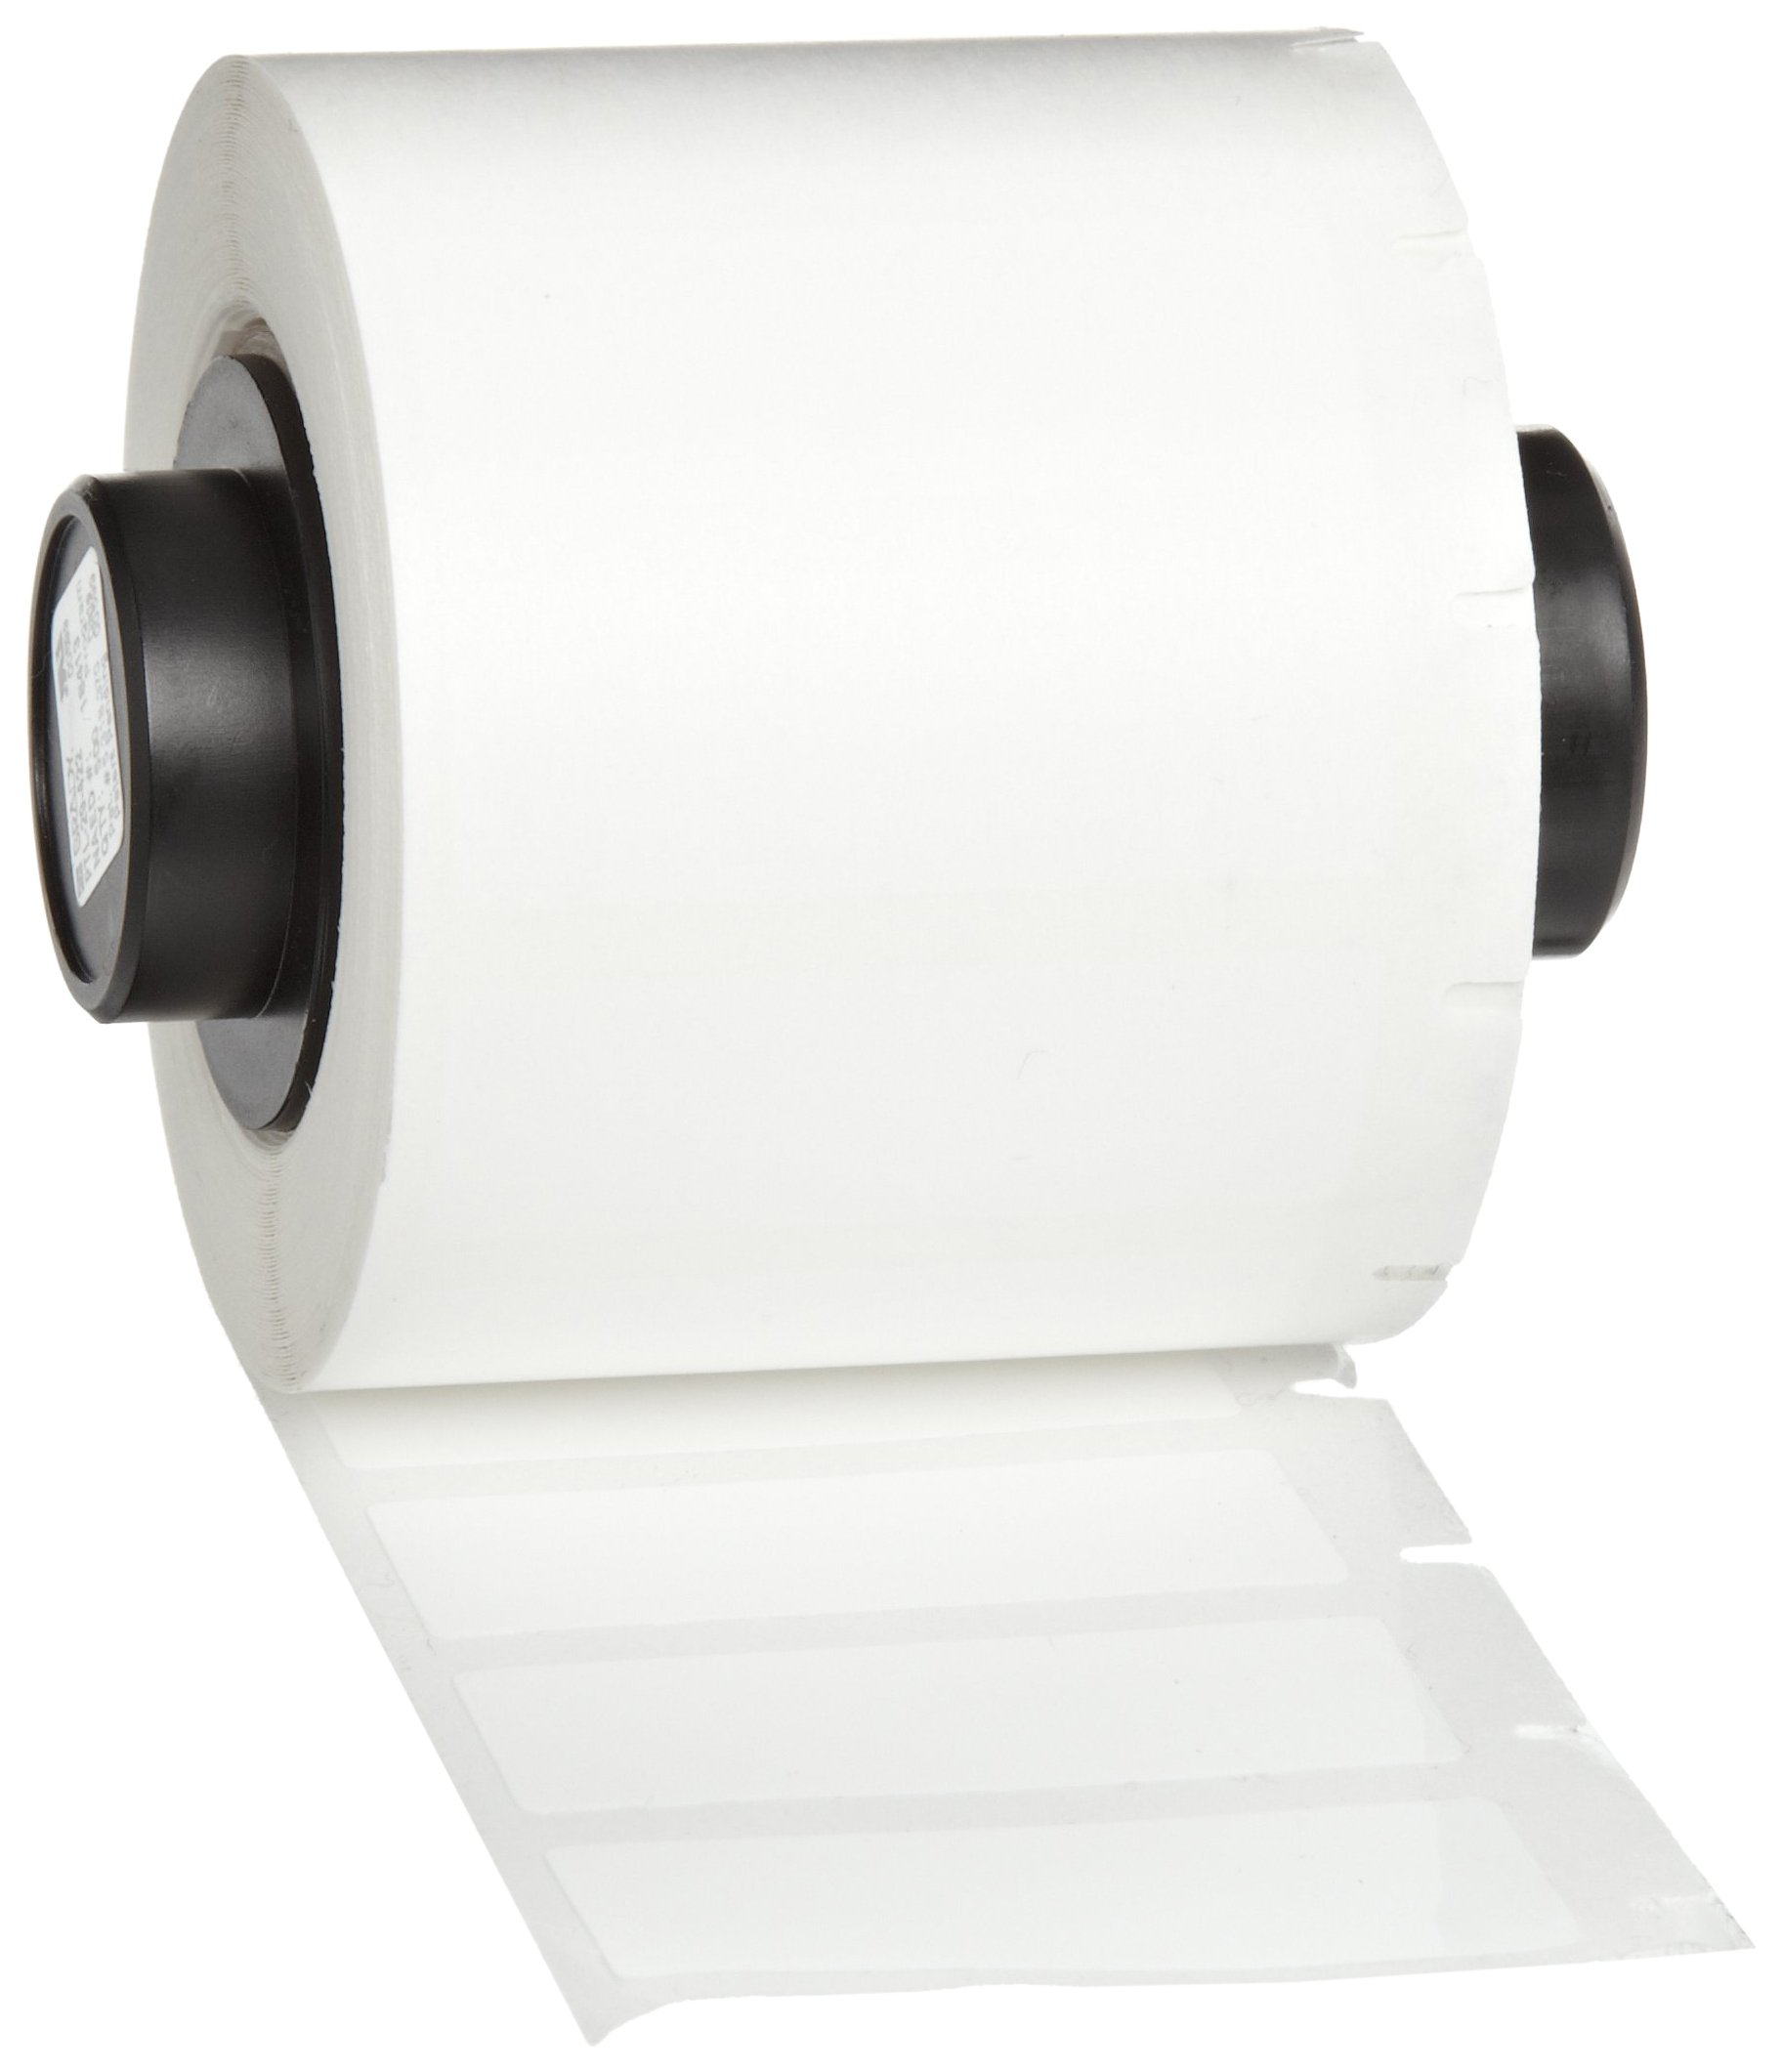 Brady PTL-29-422 TLS 2200 and TLS PC Link 1.5'' Width x 0.5'' Height, B-422 Permanent Polyester, Gloss Finish White Label (500 per Roll)